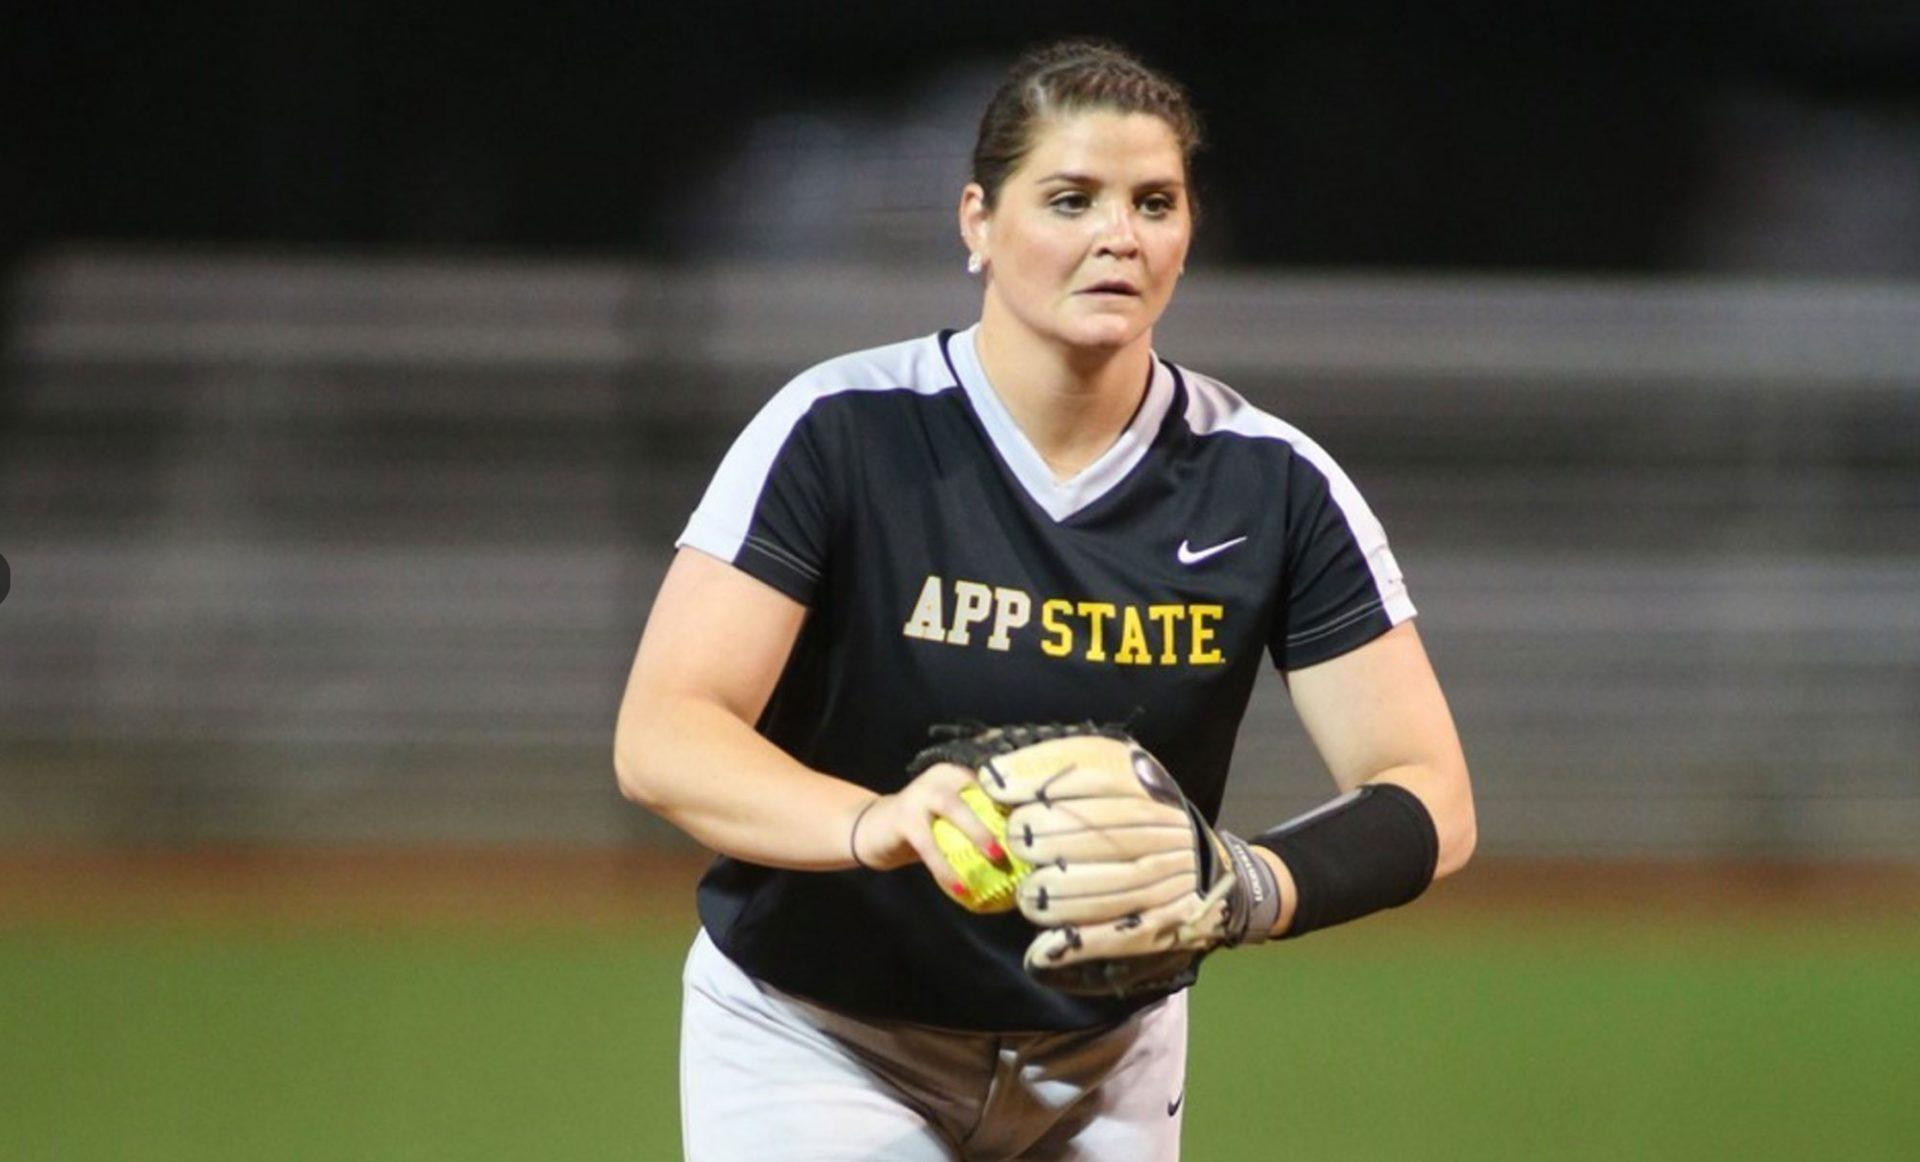 A new start for the Mountaineers' softball team